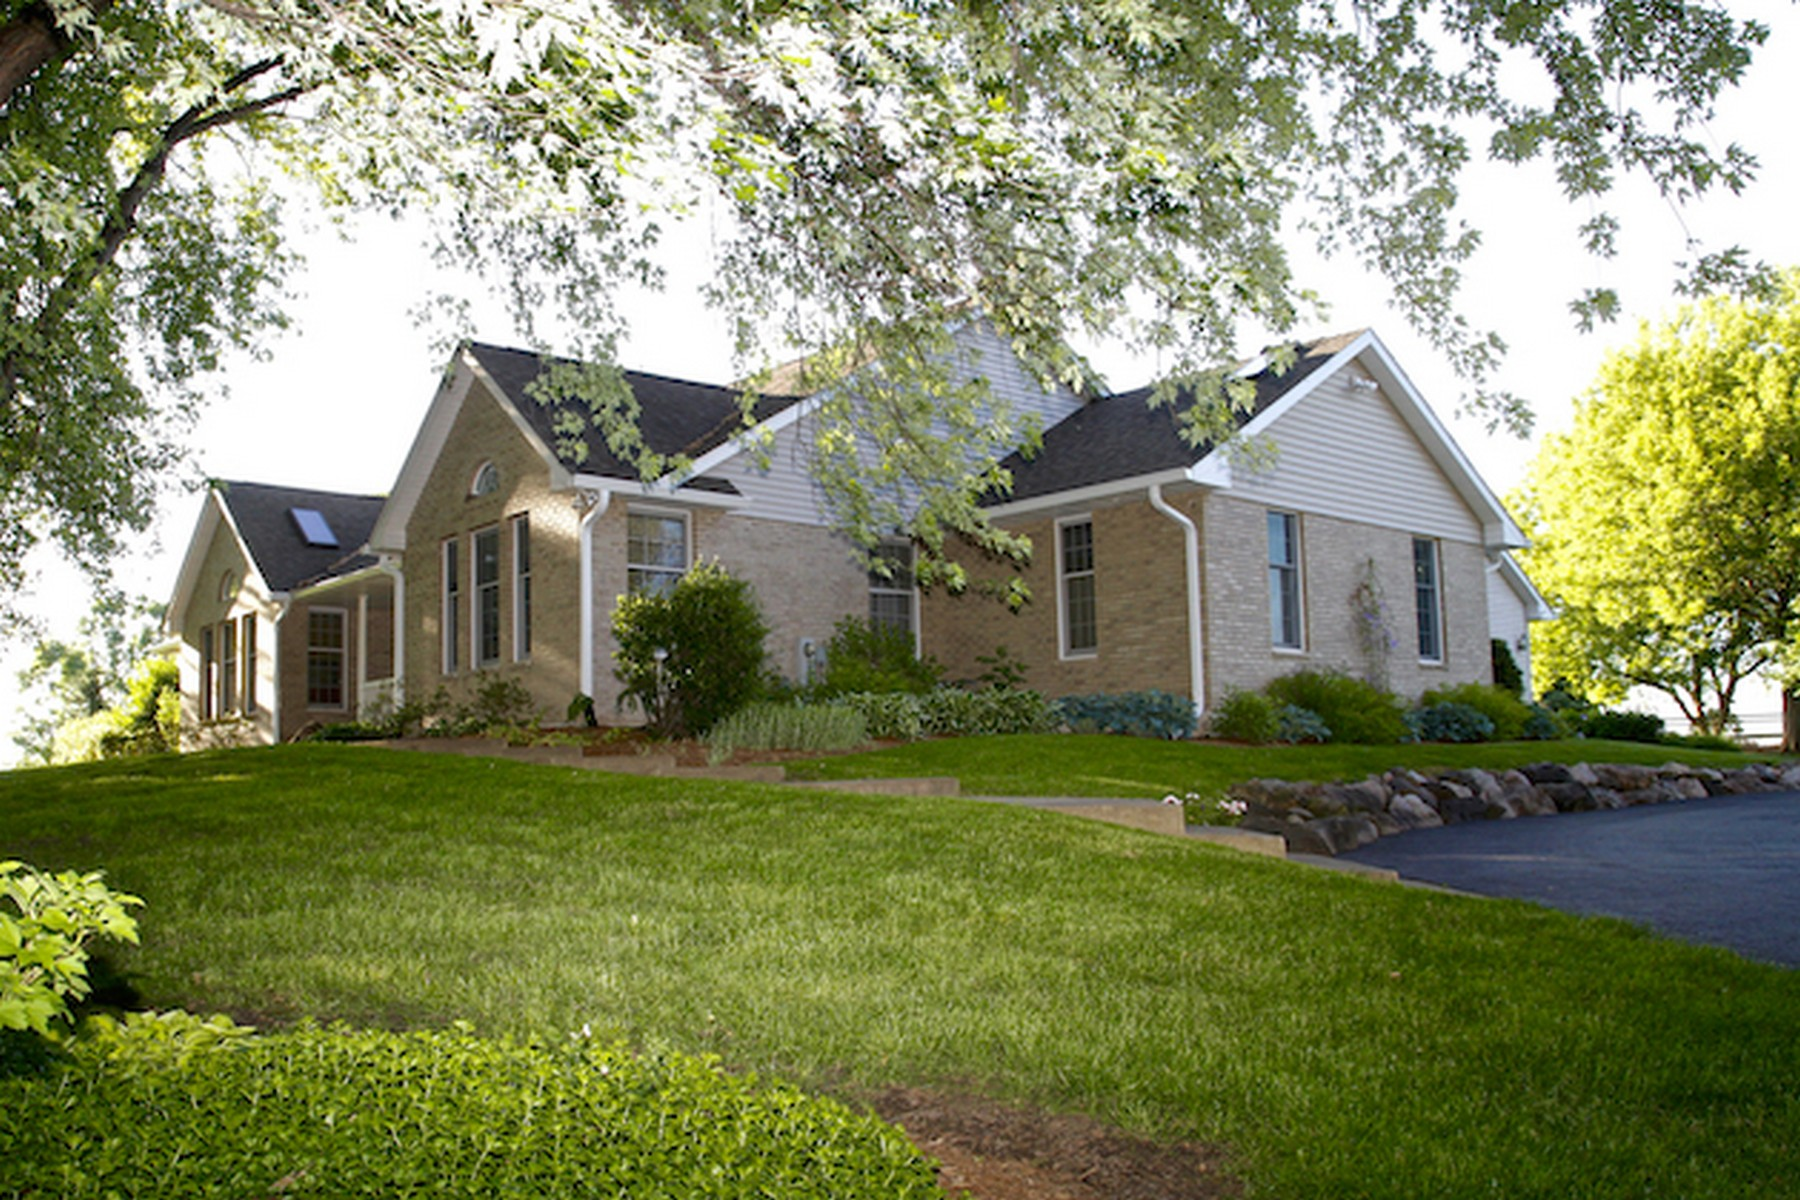 Single Family Homes for Active at Five acre oasis! 6306 IL Route 173 Poplar Grove, Illinois 61065 United States